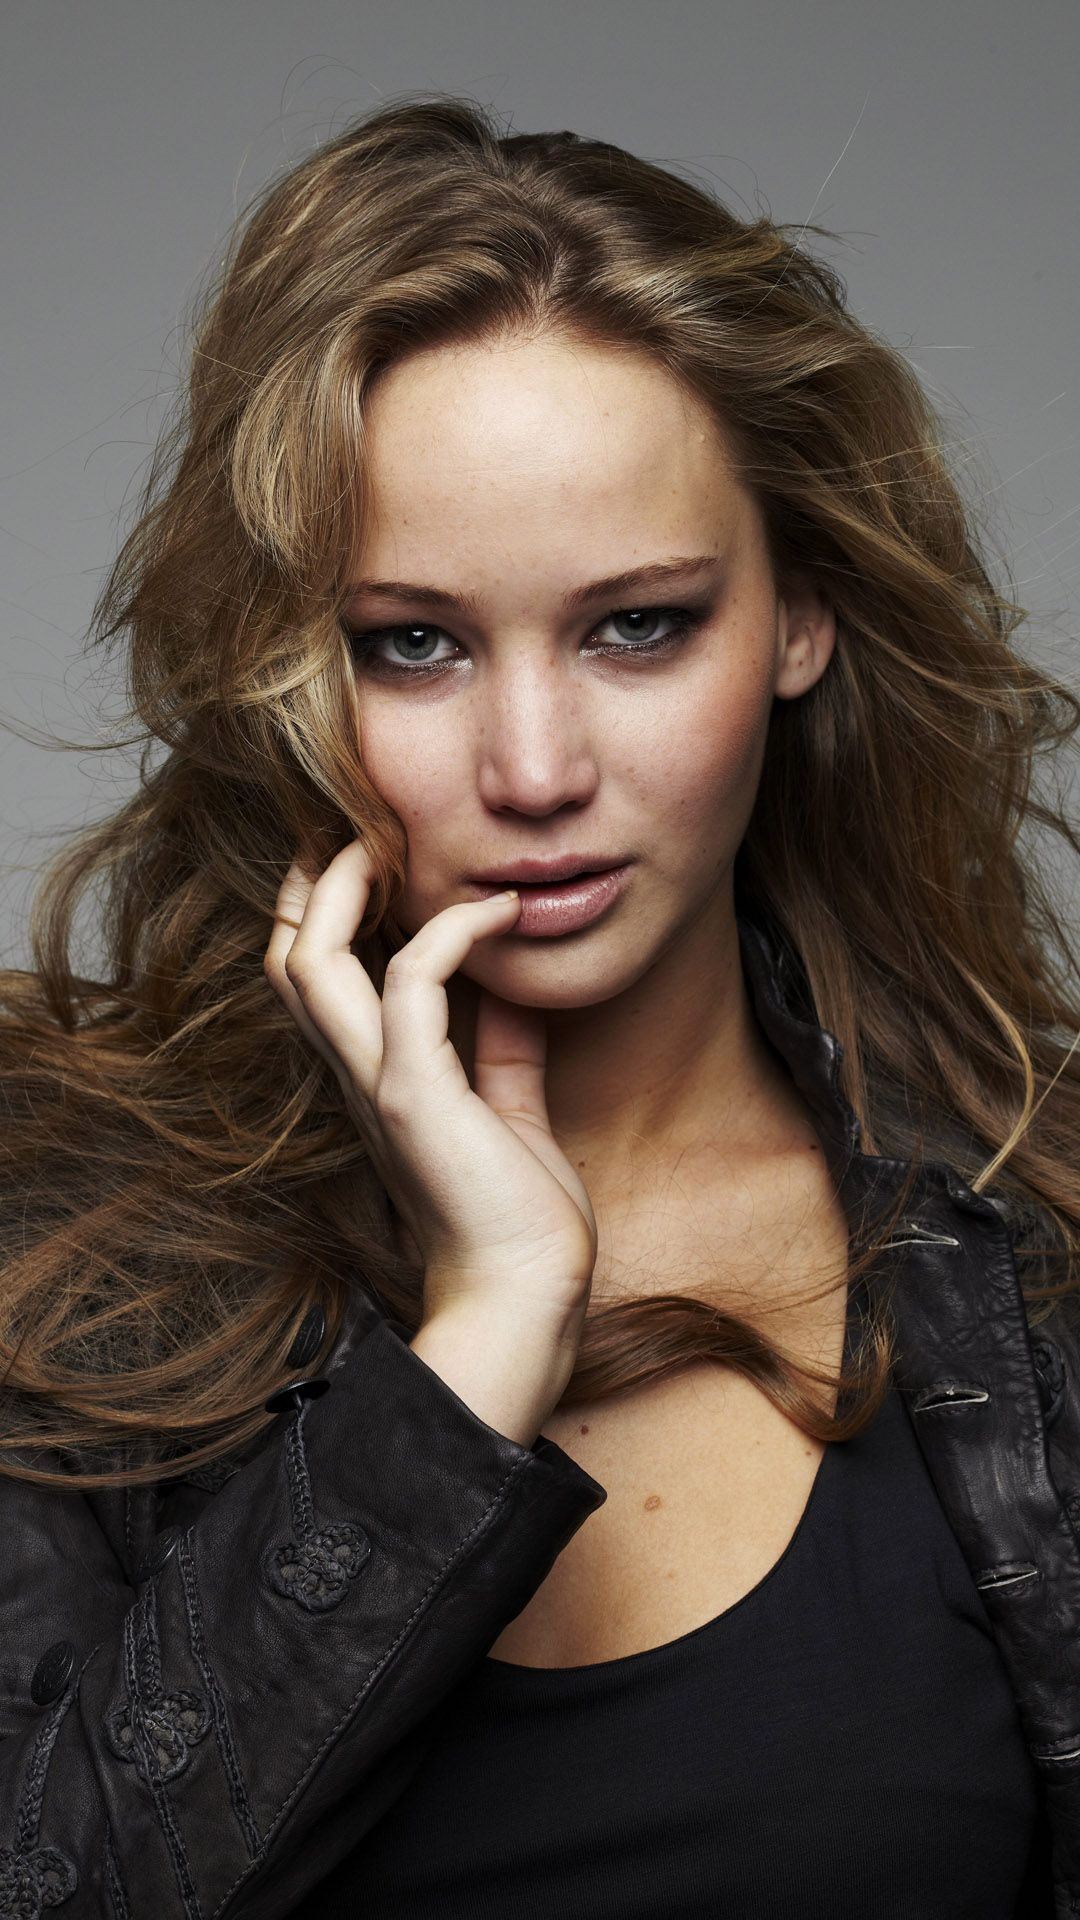 Jennifer Lawrence Wallpaper Phone , HD Wallpaper & Backgrounds